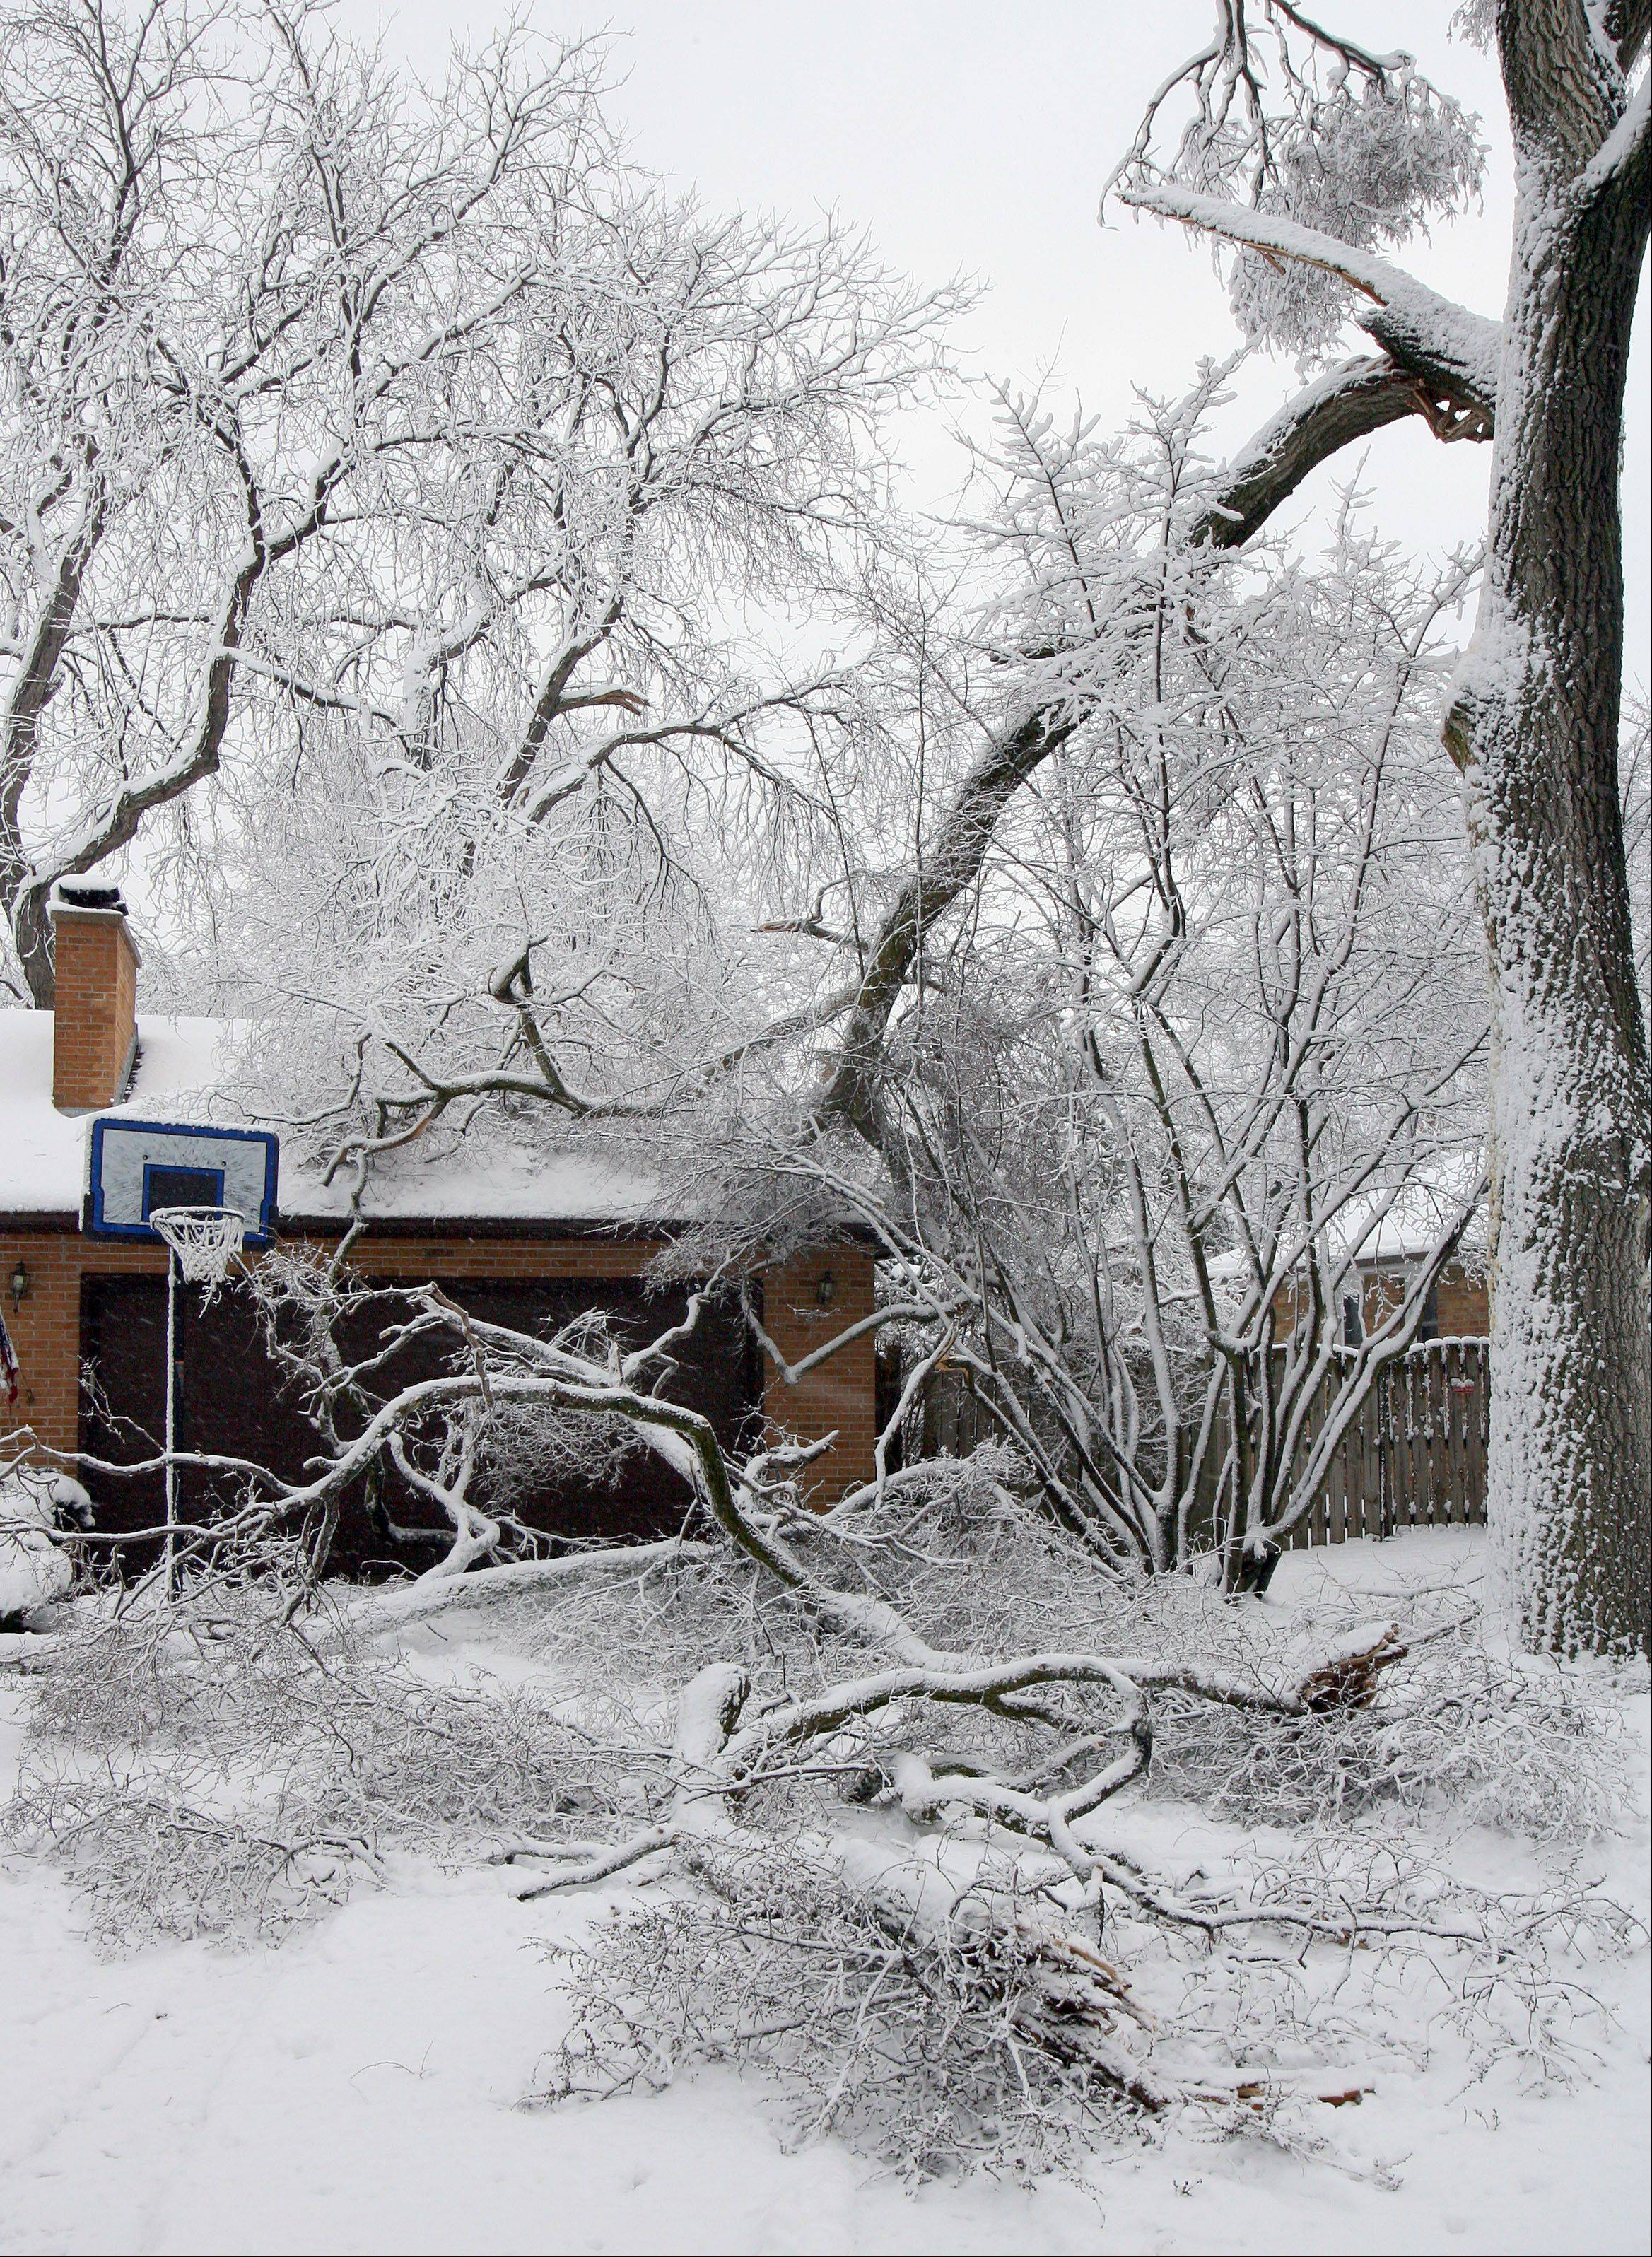 Tree branches sit in the driveway of this house in Libertyville after a snowstorm dumped heavy, wet snow on the area Friday.